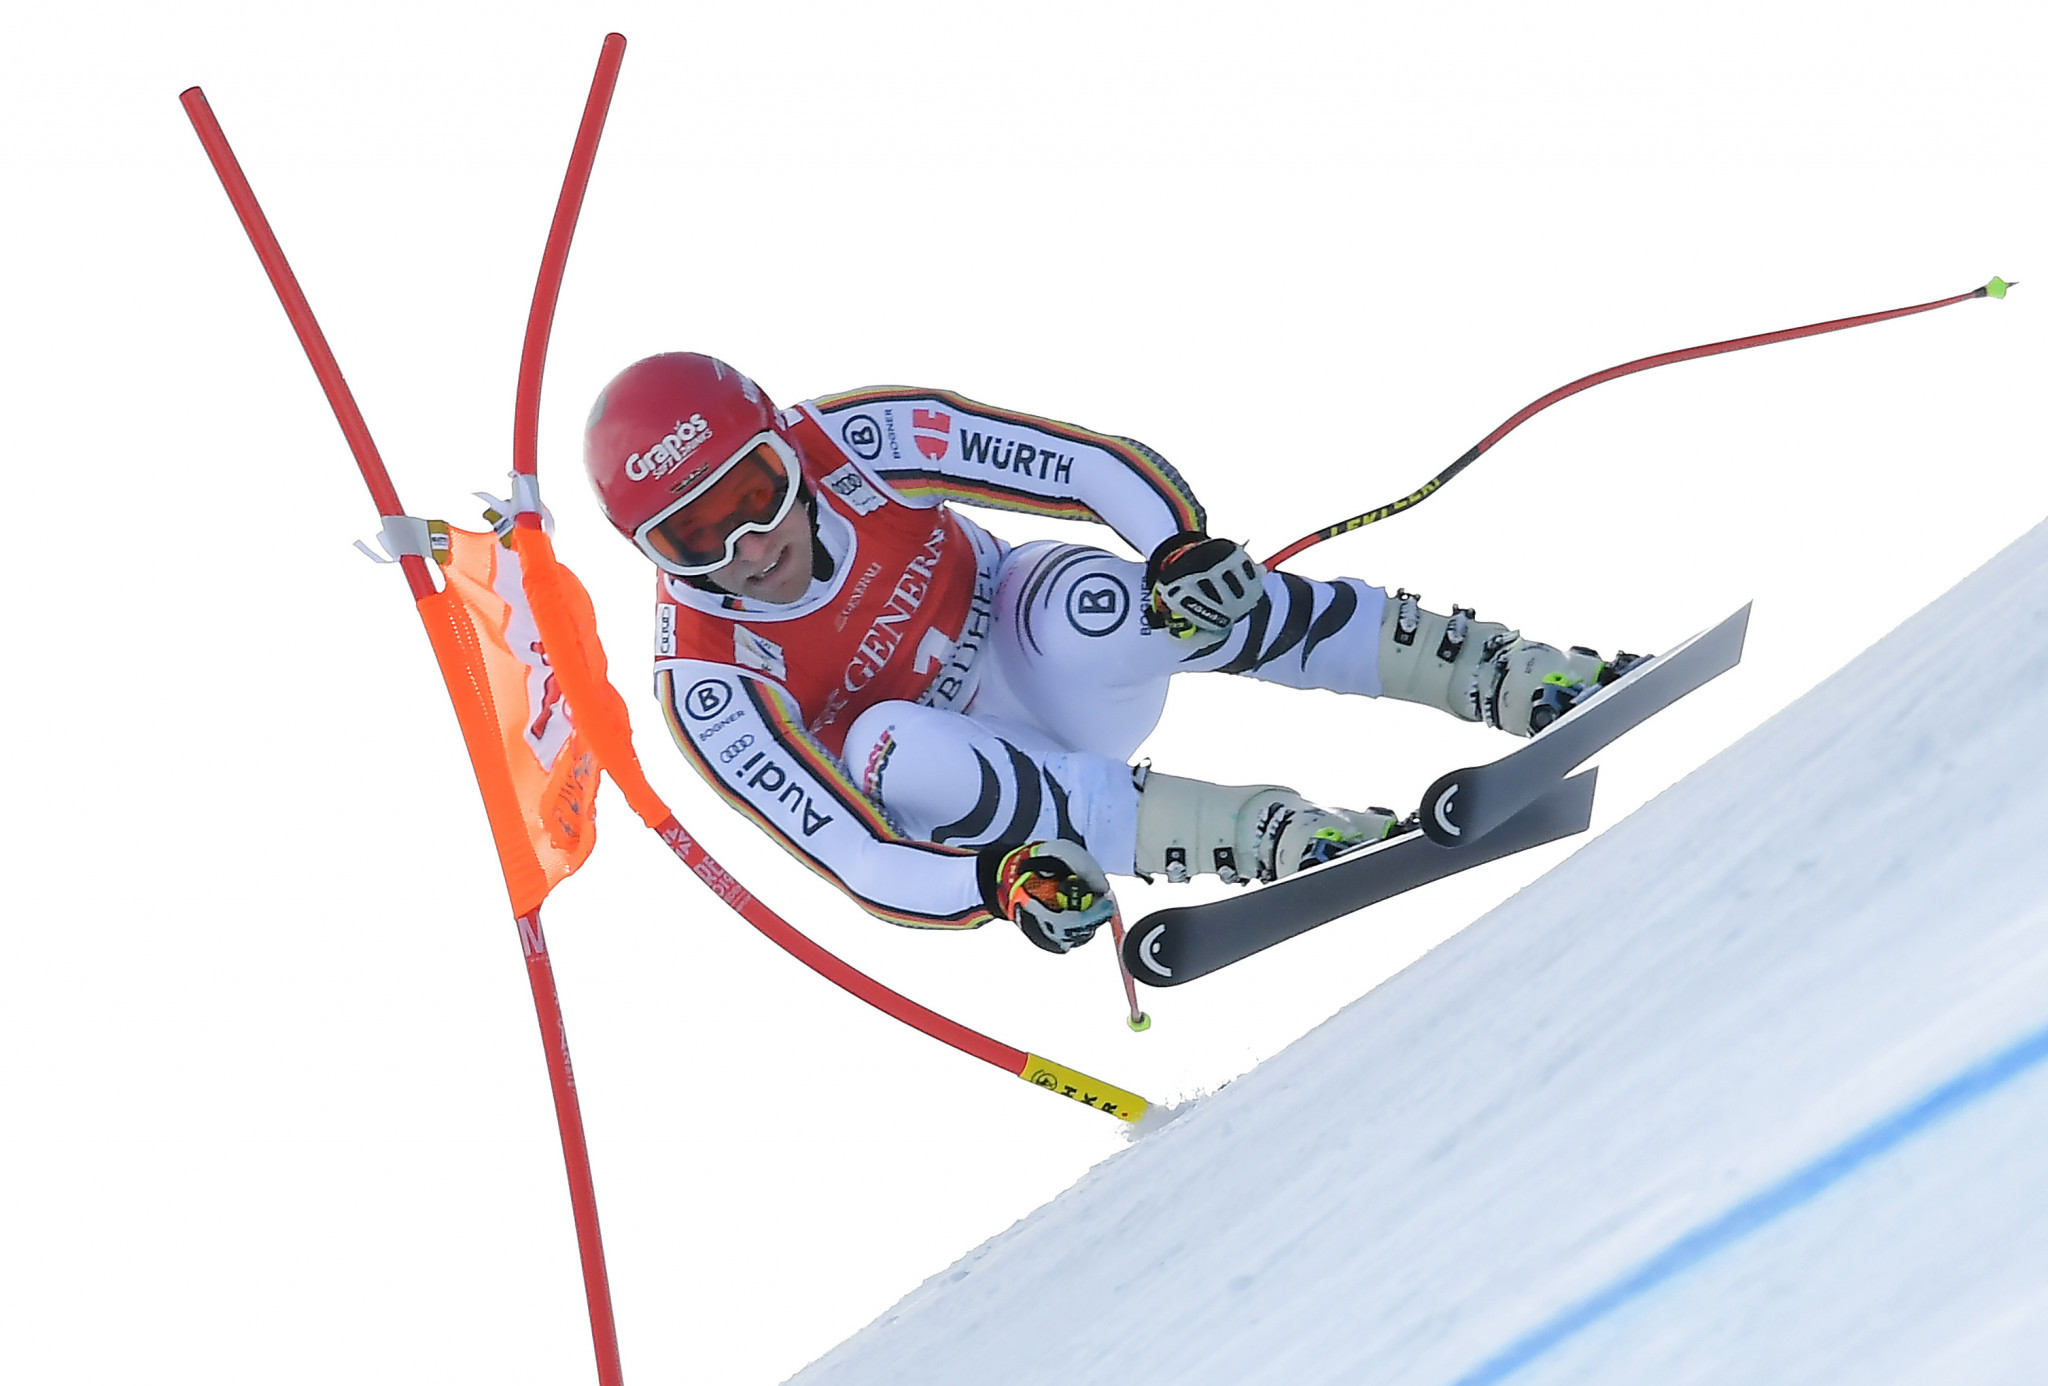 Josef Ferstl won the men's super-G in Kitzbuehel to claim only his second World Cup podium ©Getty Images